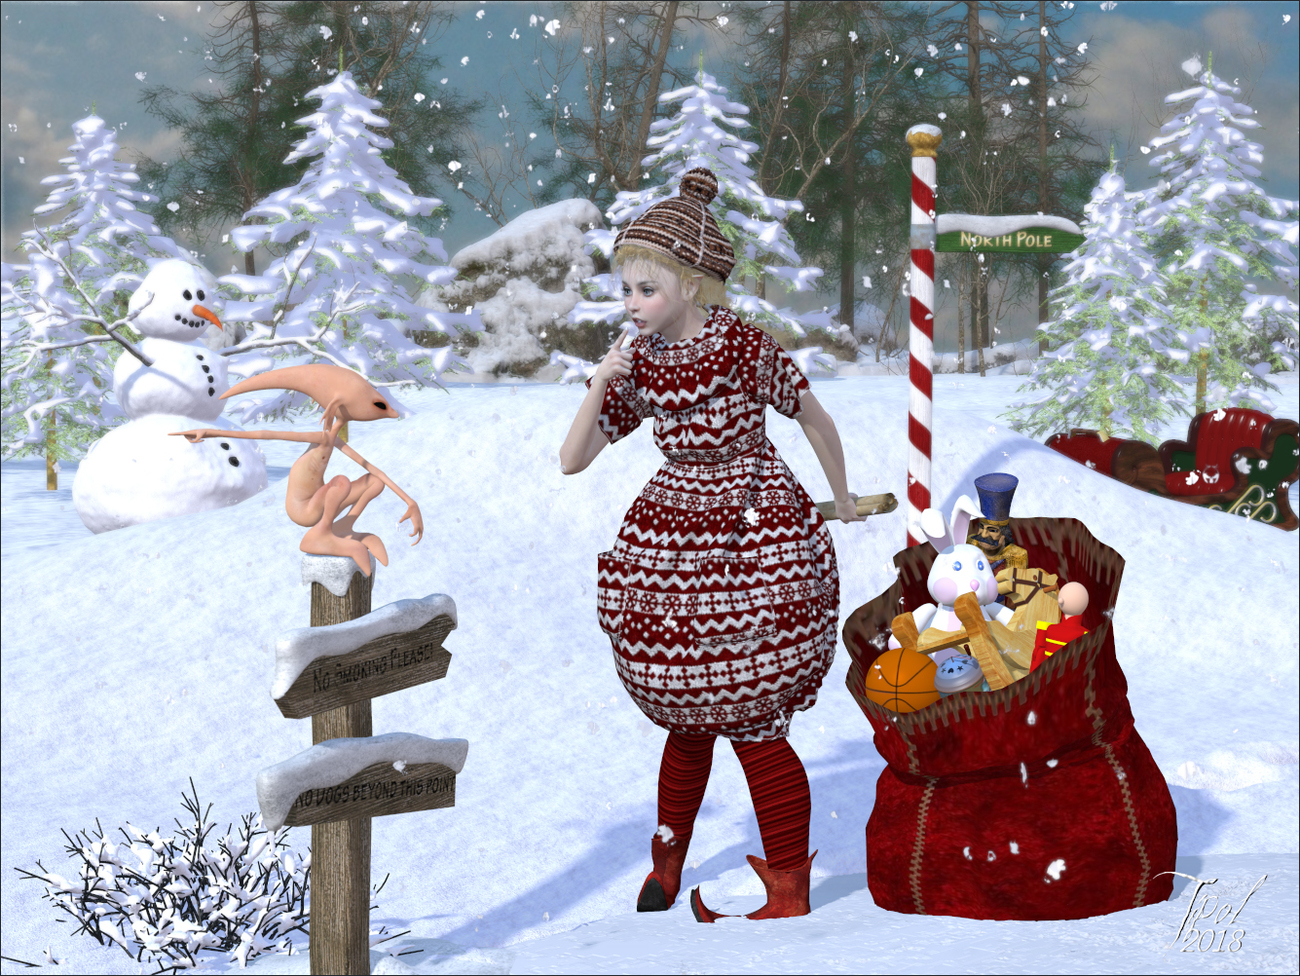 Happy Christmas by Tipol